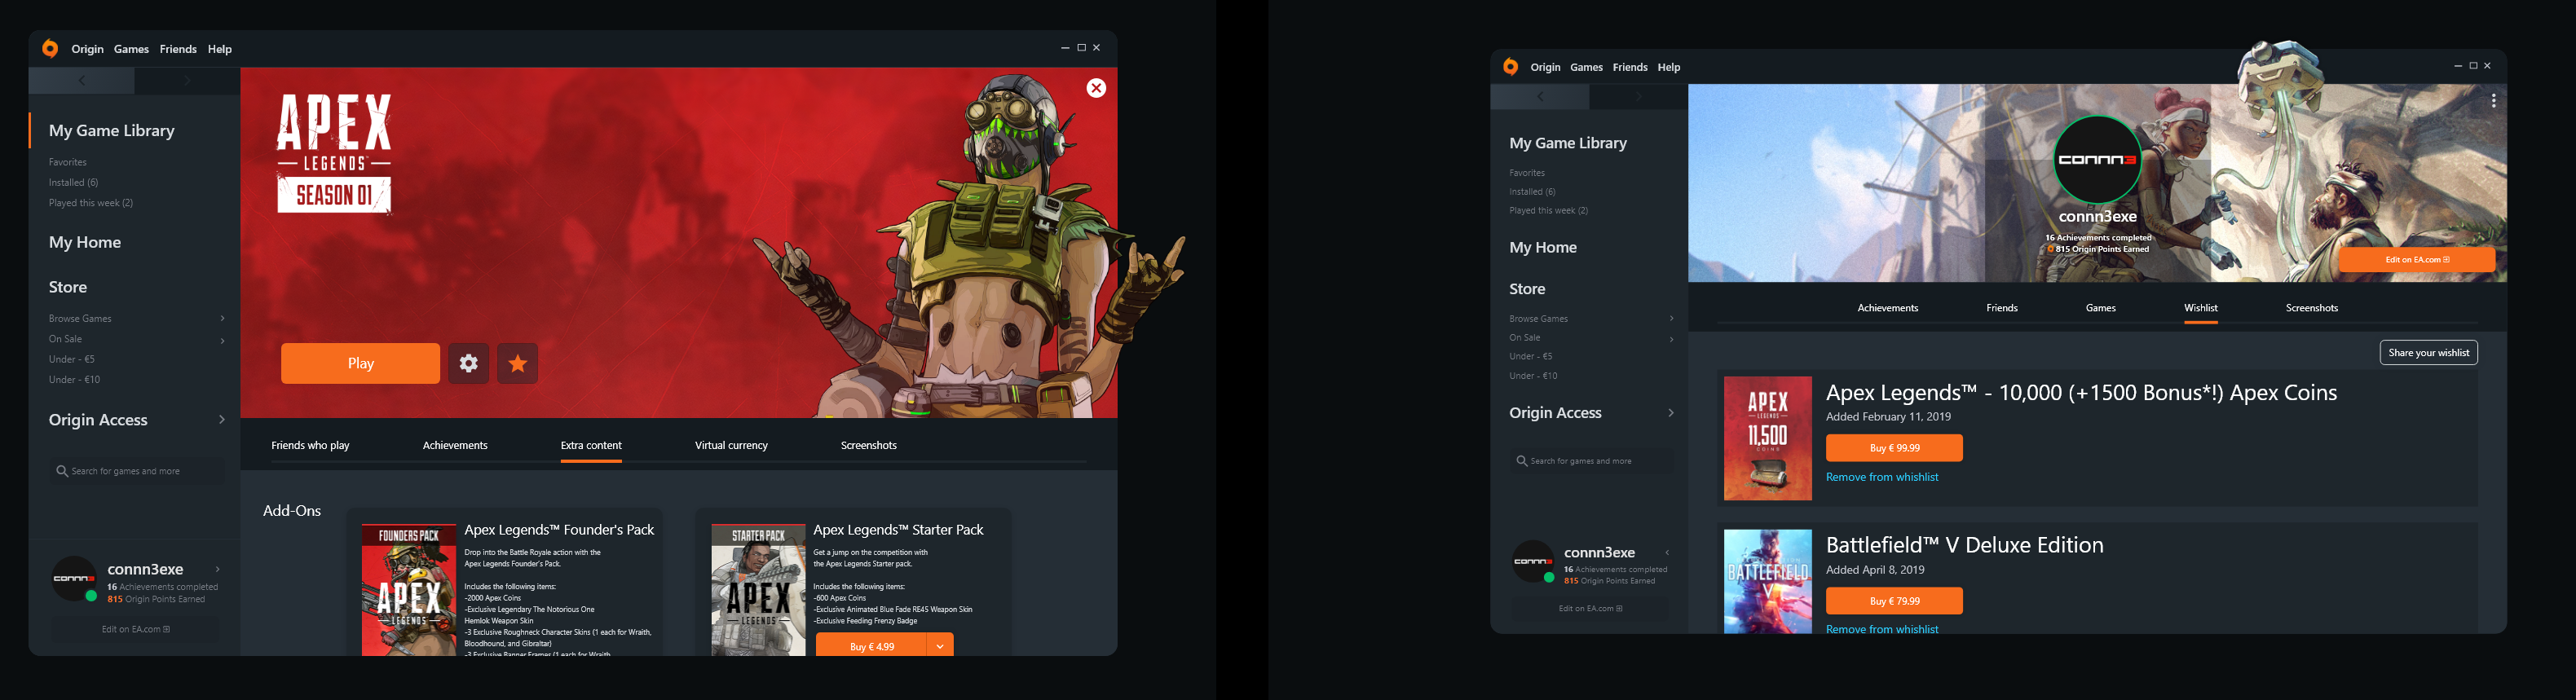 Hey guys, I redesigned Apex page and Origin Client, what do